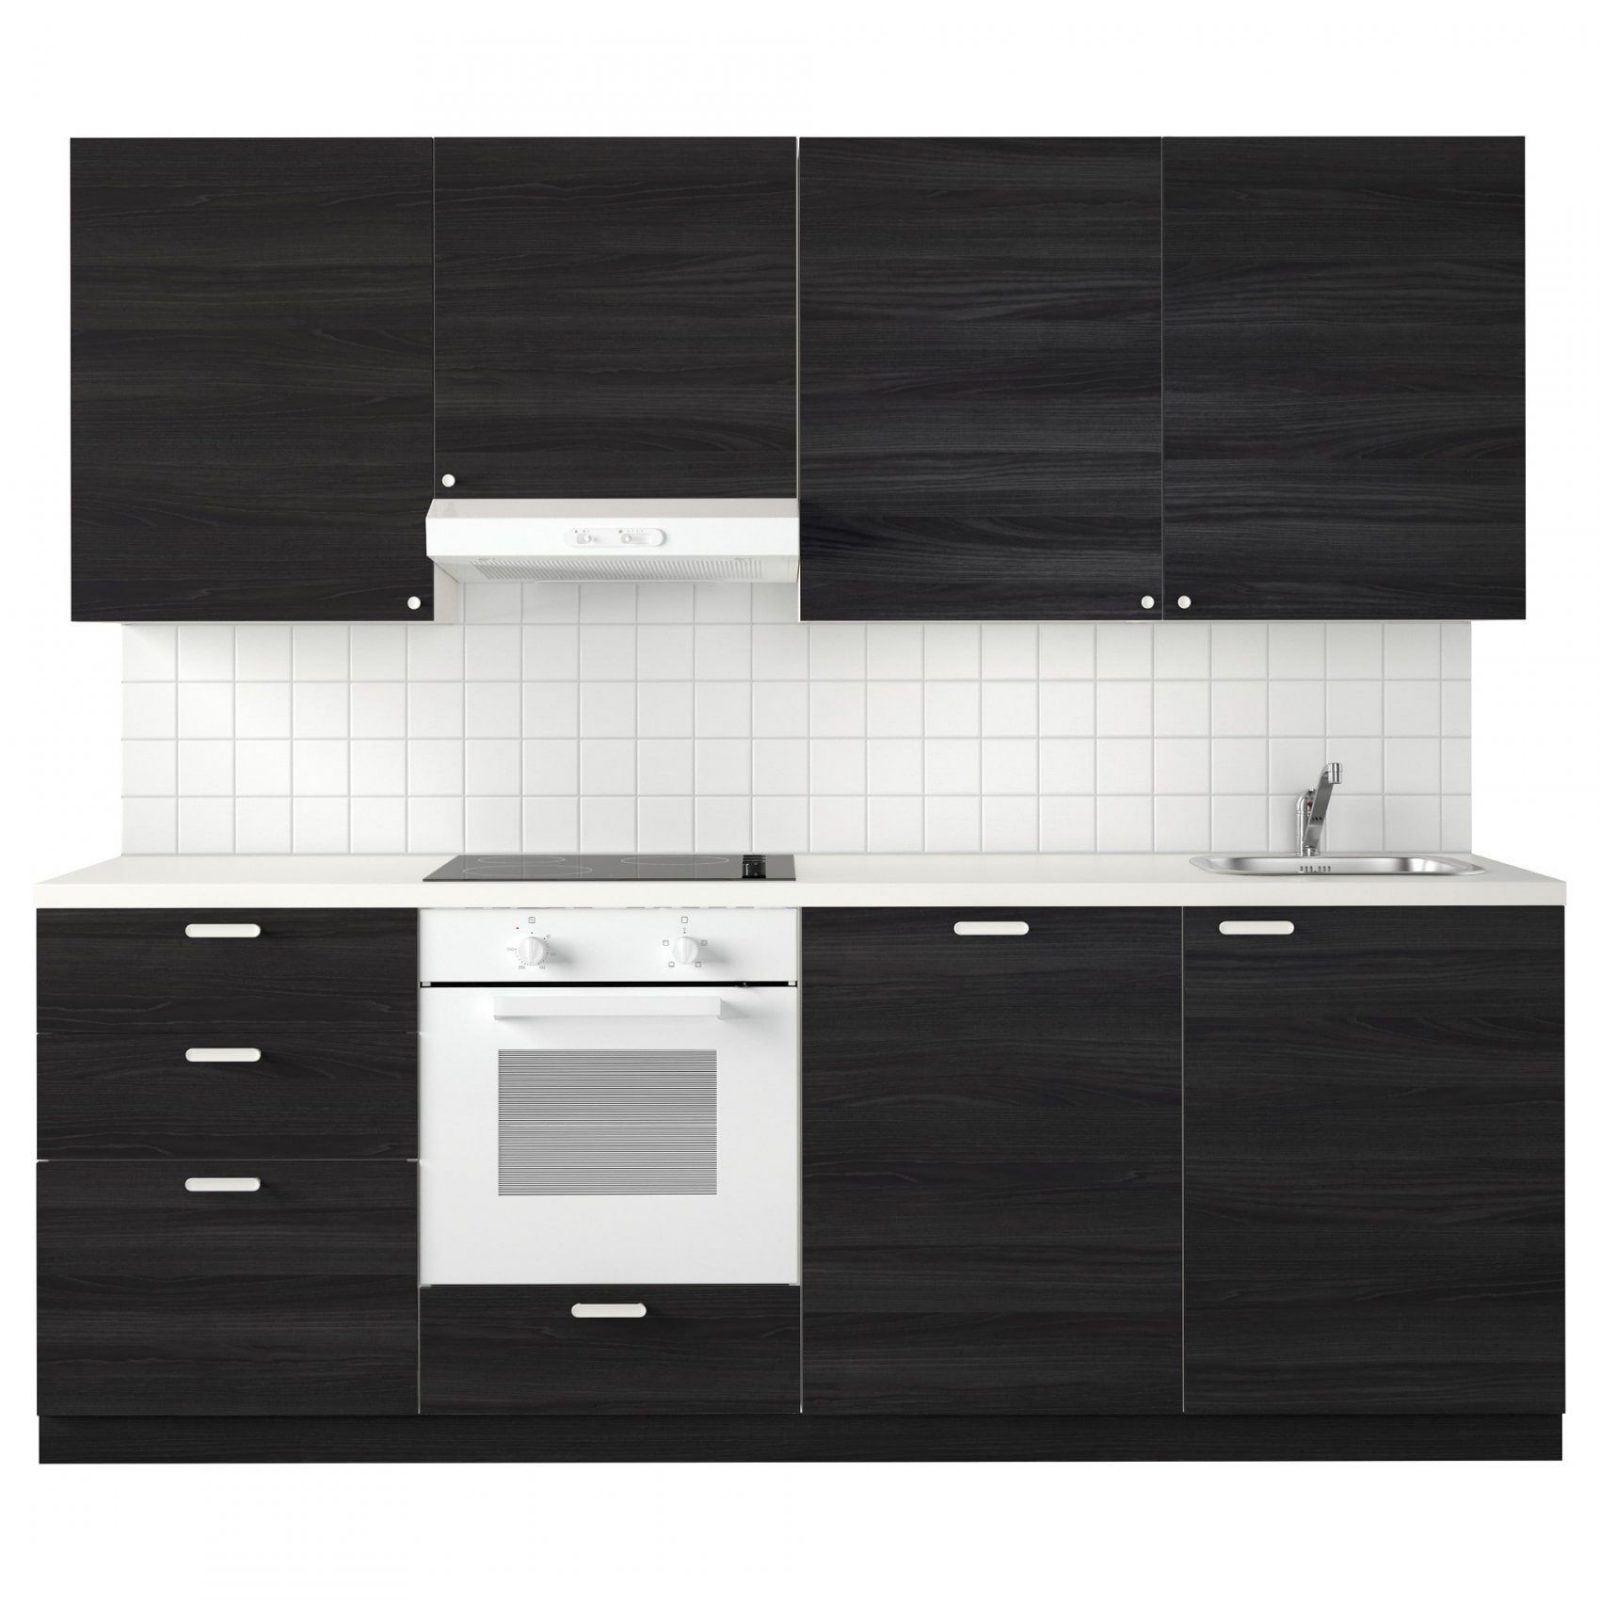 ikea k chen lack eckbank f r wei e k che landhausstil eine einrichten massiv ikea mit siemens. Black Bedroom Furniture Sets. Home Design Ideas